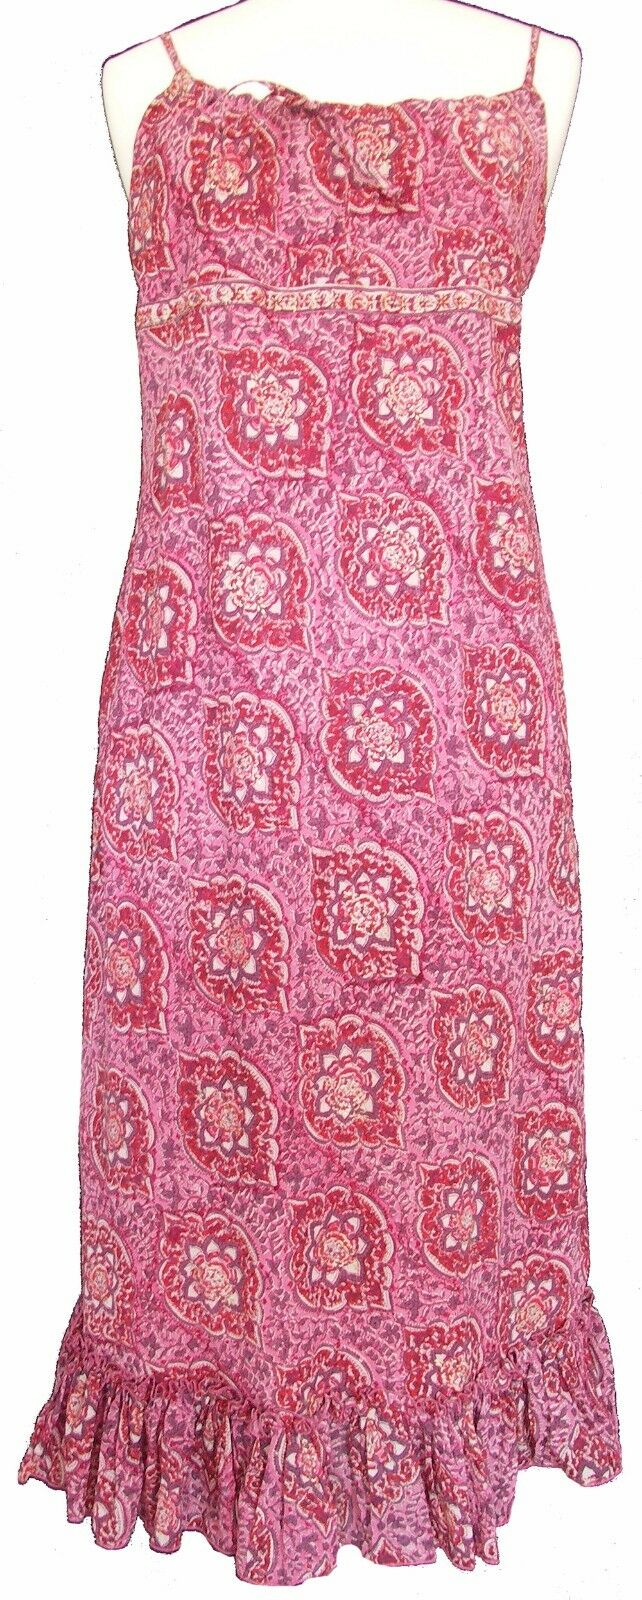 Anokhi floral knee length strappy dress - 100% Cotton